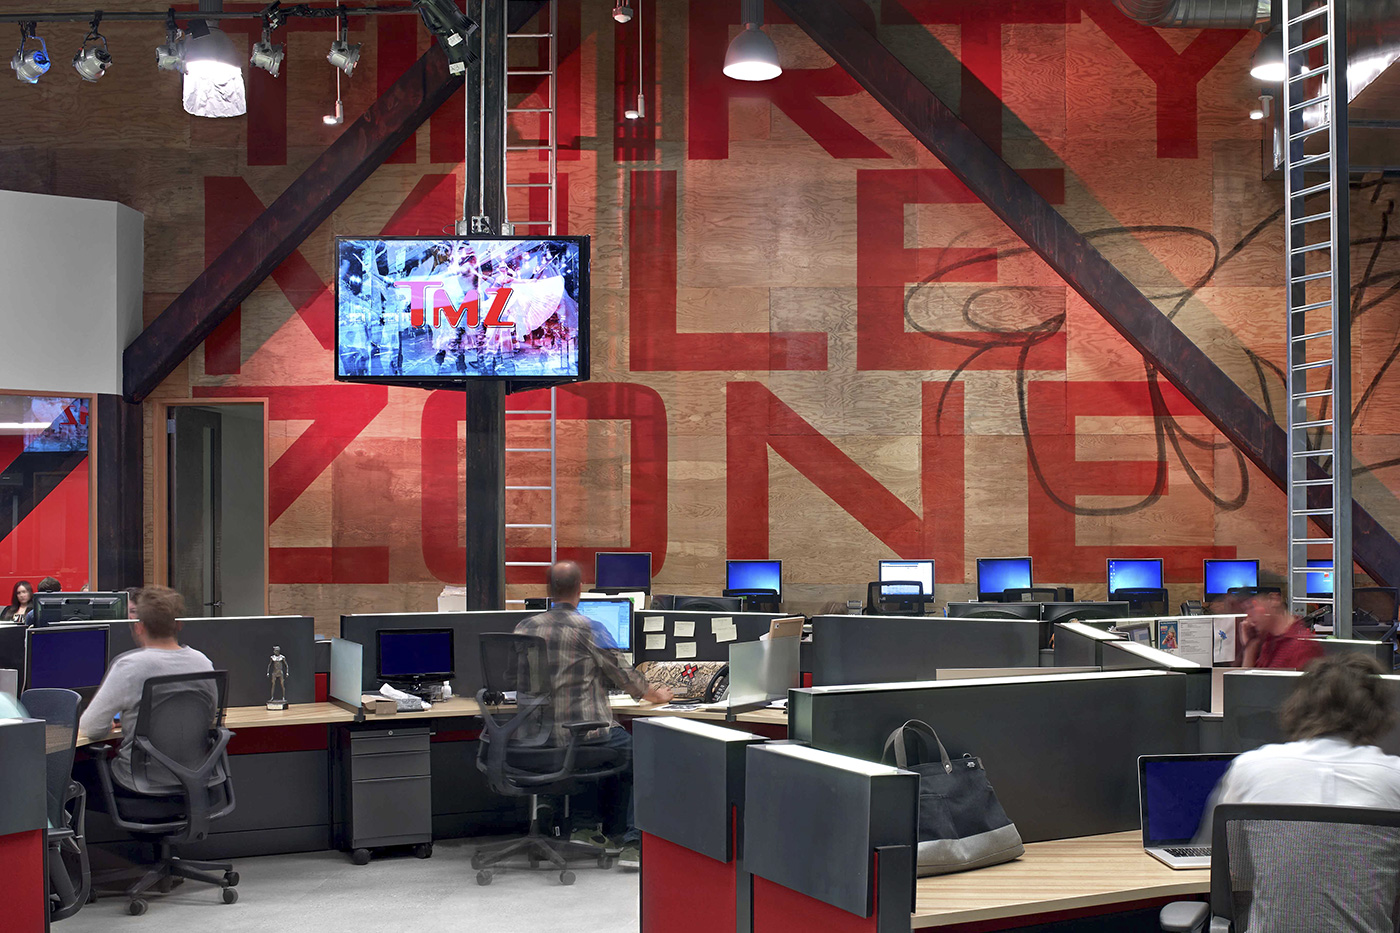 Take a tour of tmz 39 s stylish headquarters officelovin 39 for Tmz tours in los angeles